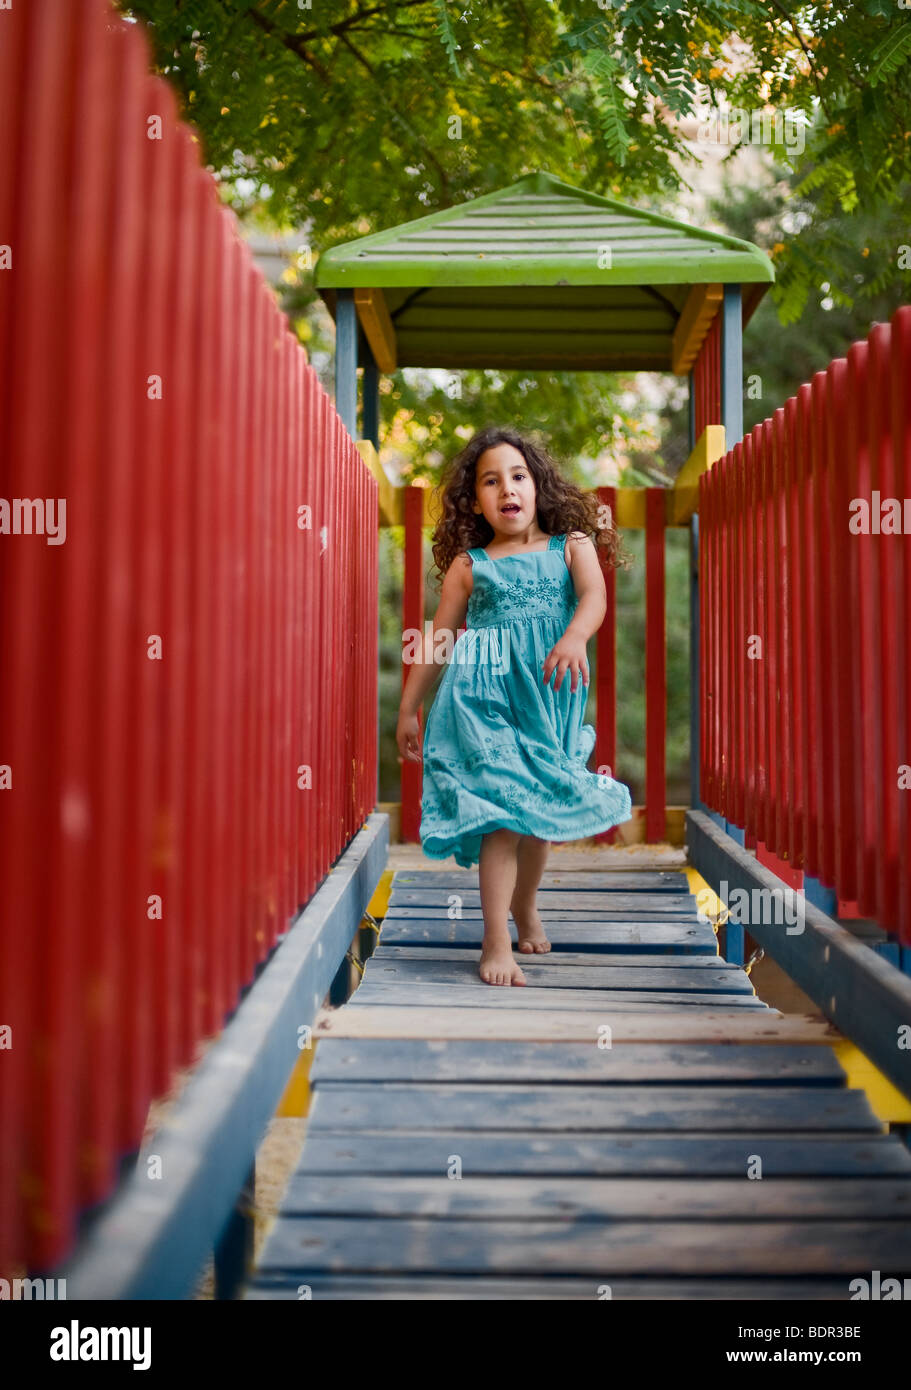 girl runing on a wooden 'bridge' in a playground - Stock Image